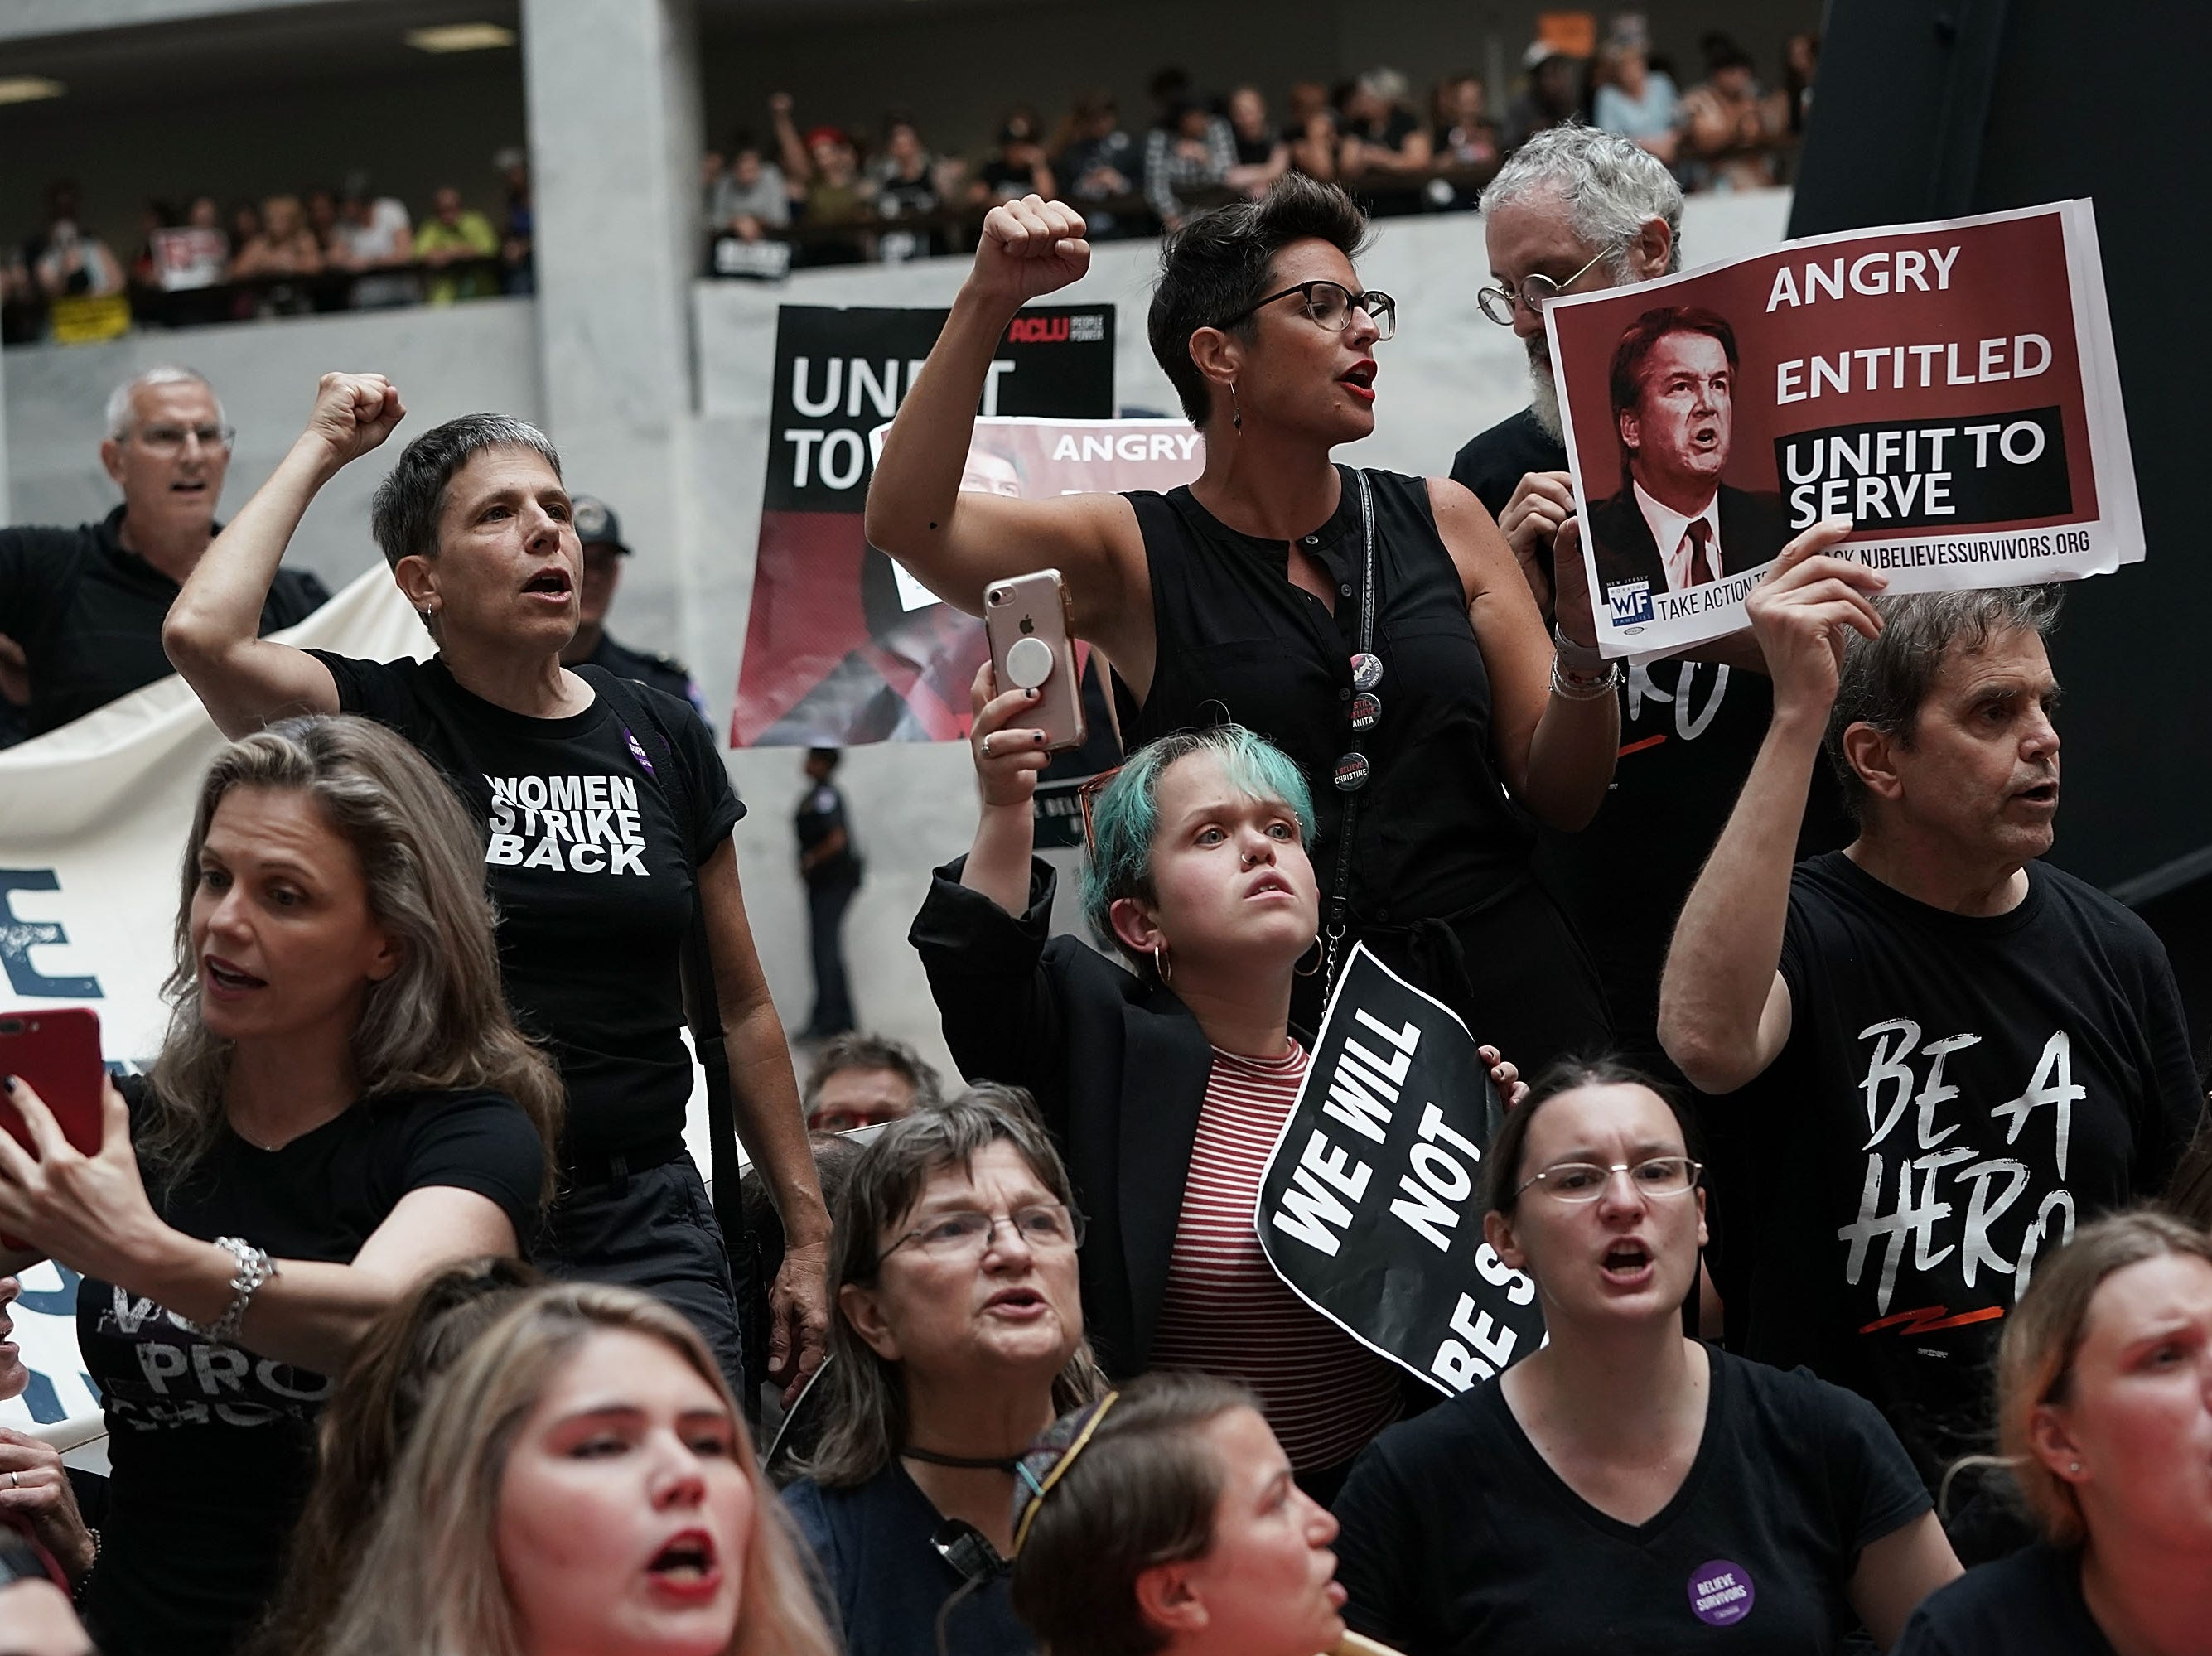 WASHINGTON, DC - OCTOBER 04:  Activists shout slogans during a protest against the confirmation of Supreme Court nominee Judge Brett Kavanaugh October 4, 2018 at the Hart Senate Office Building on Capitol Hill in Washington, DC. Senators had an opportunity to review a new FBI background investigation into accusations of sexual assault against Kavanaugh and Republican leaders are moving to have a vote on his confirmation this weekend. (Photo by Alex Wong/Getty Images)